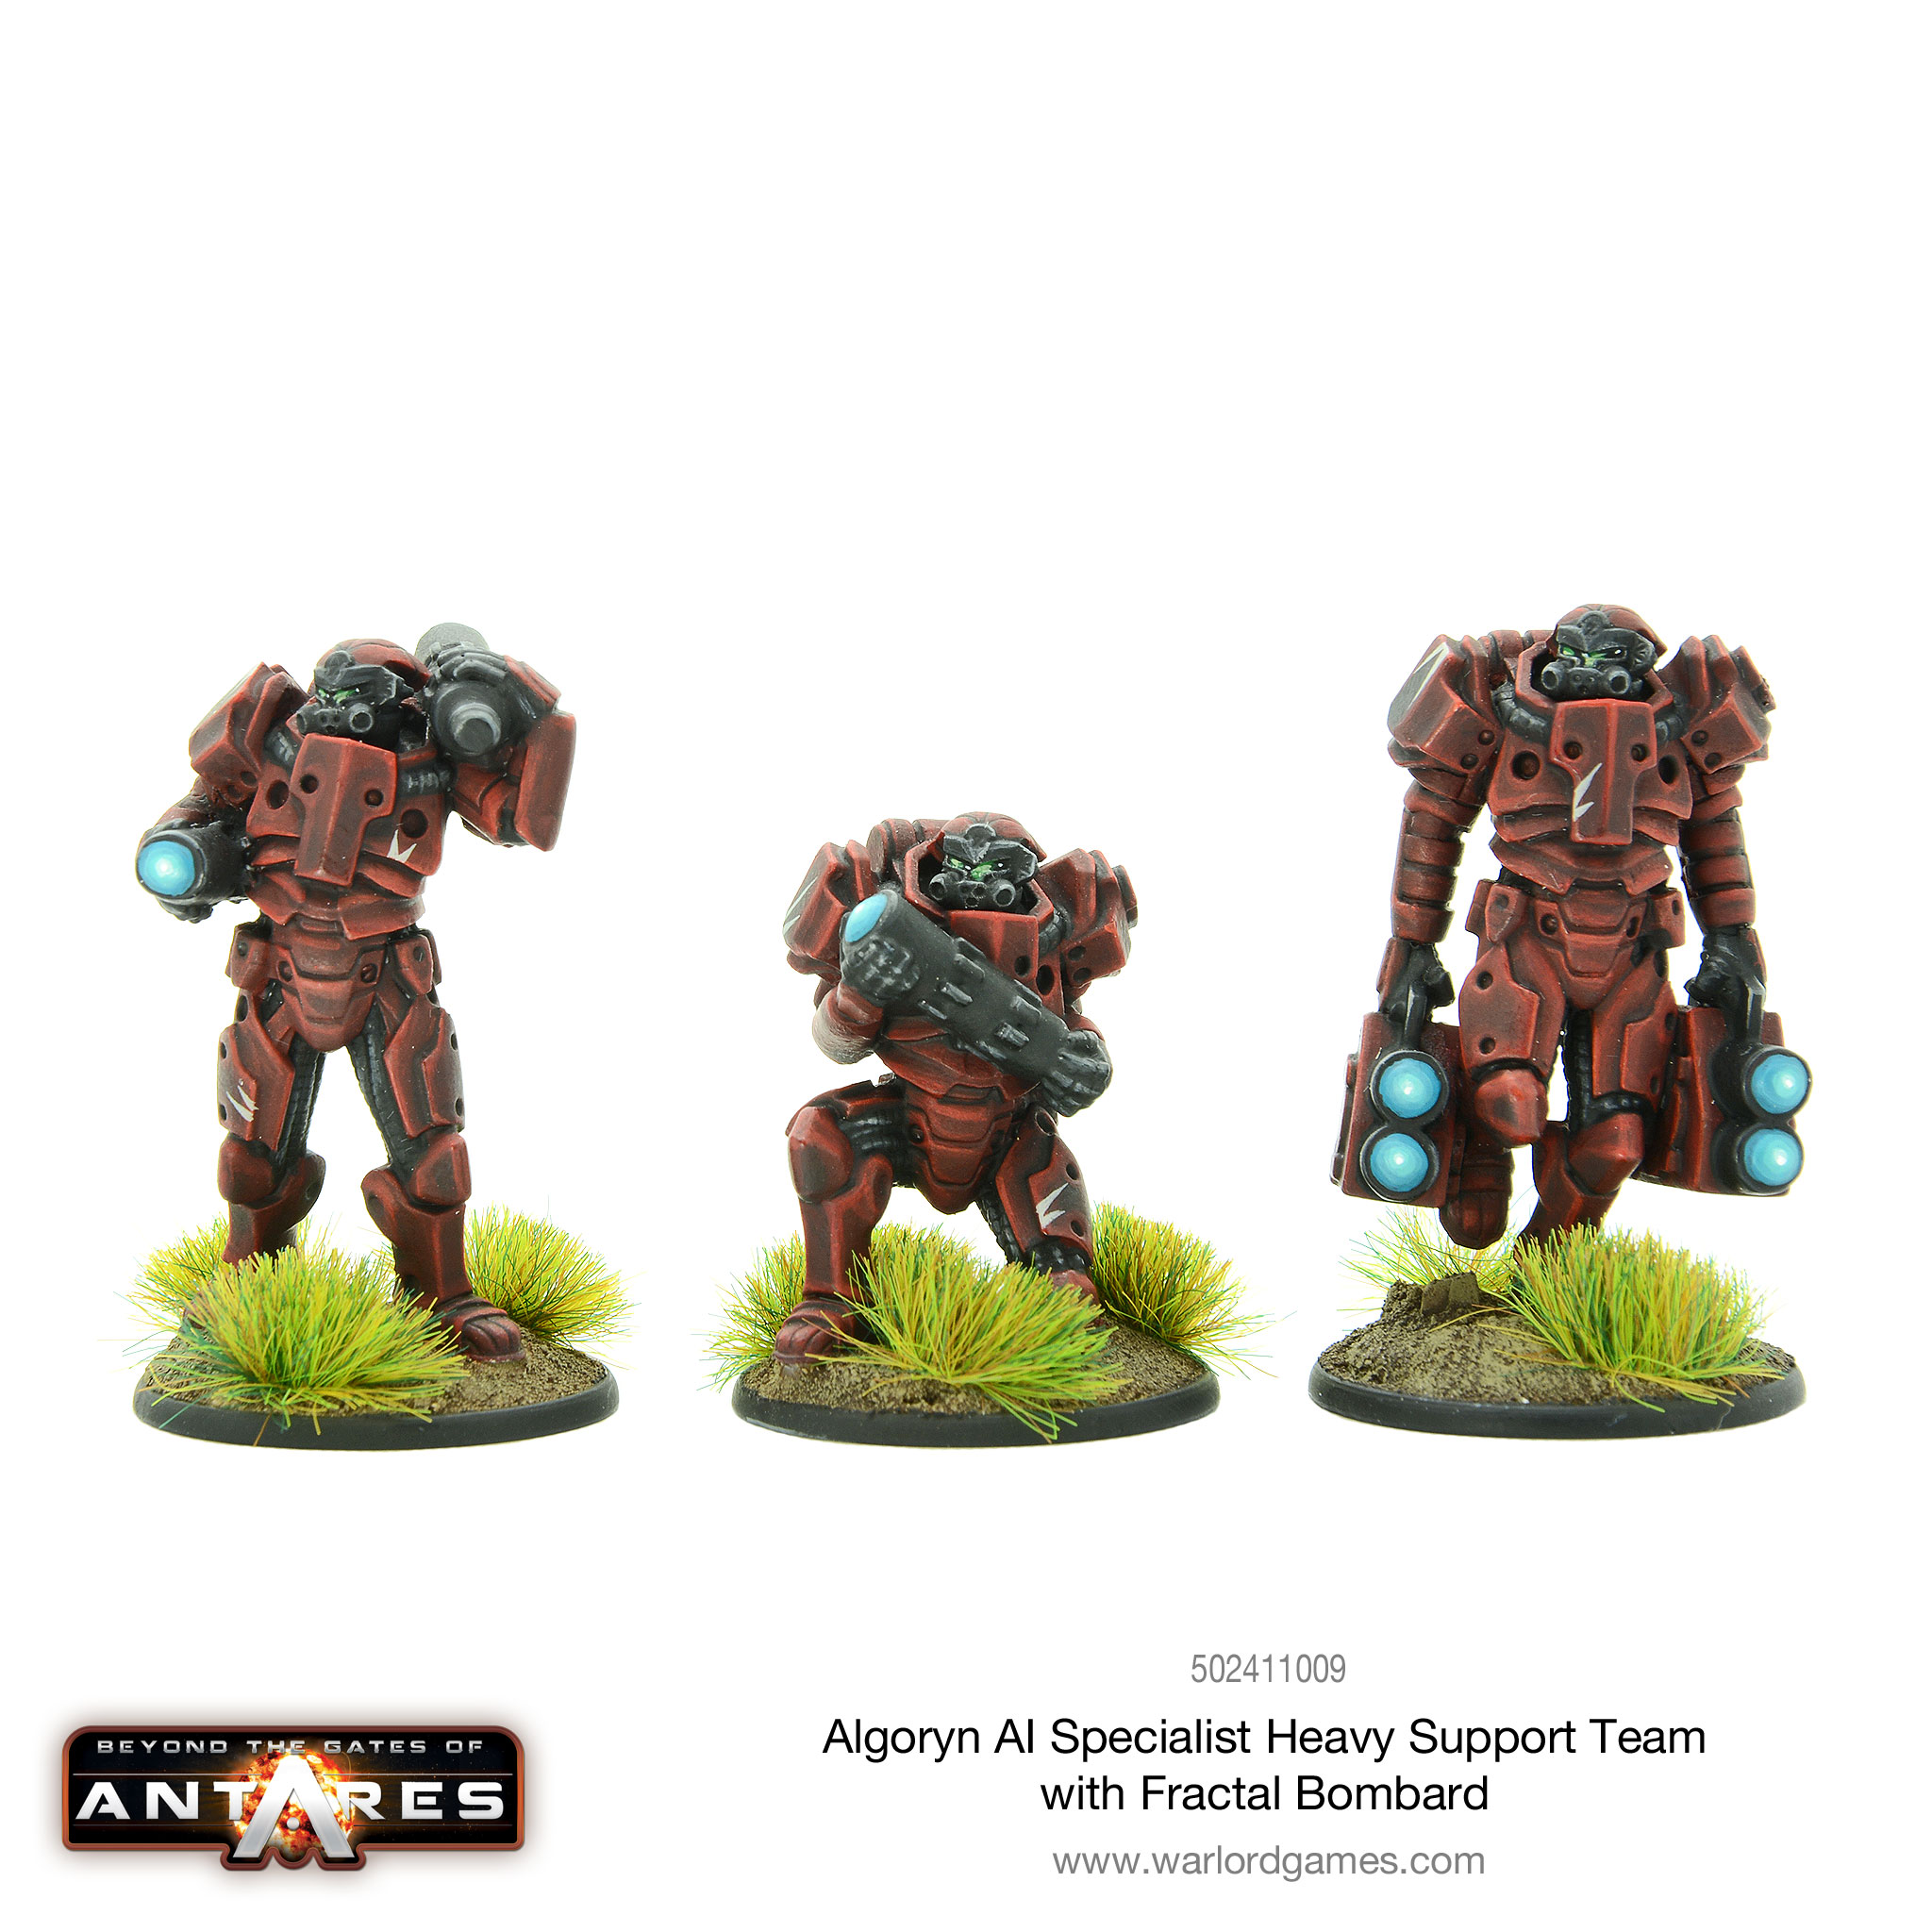 Algoryn AI Specialist Heavy Support Team